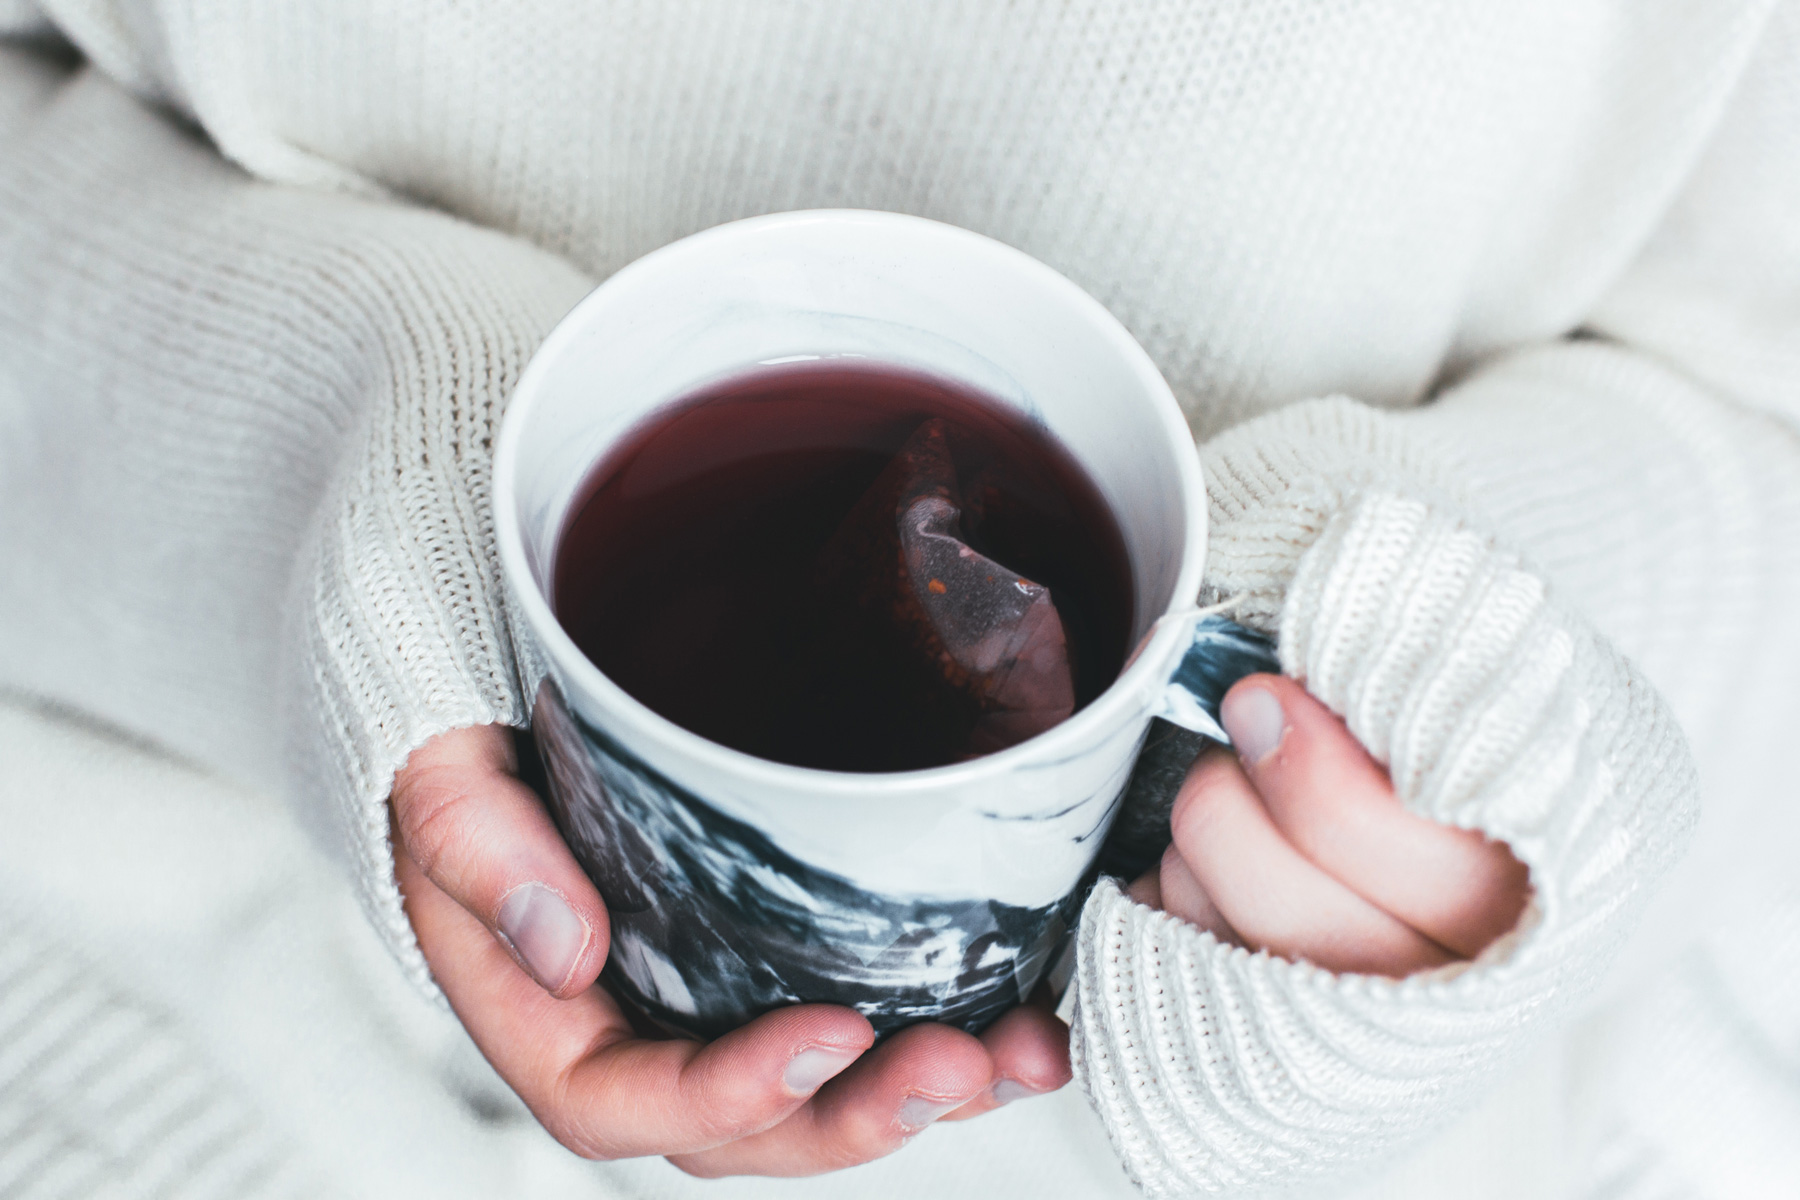 Does Drinking Hot Tea Increase Your Risk of Having Esophageal Cancer? We Asked an Expert